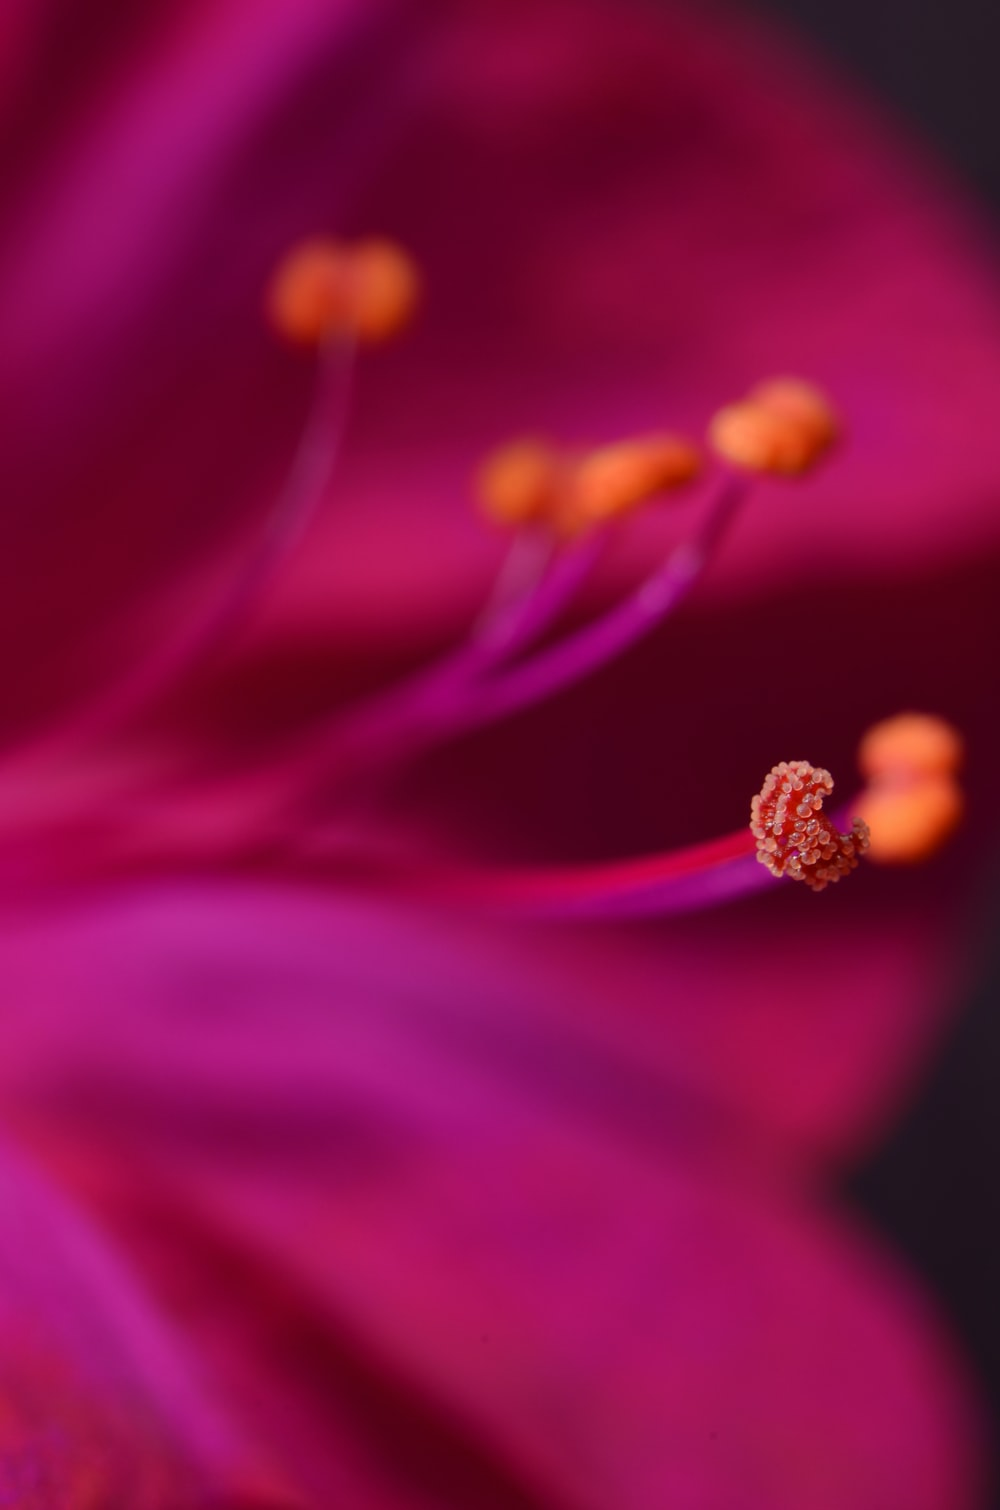 selective focus photography of pink textile